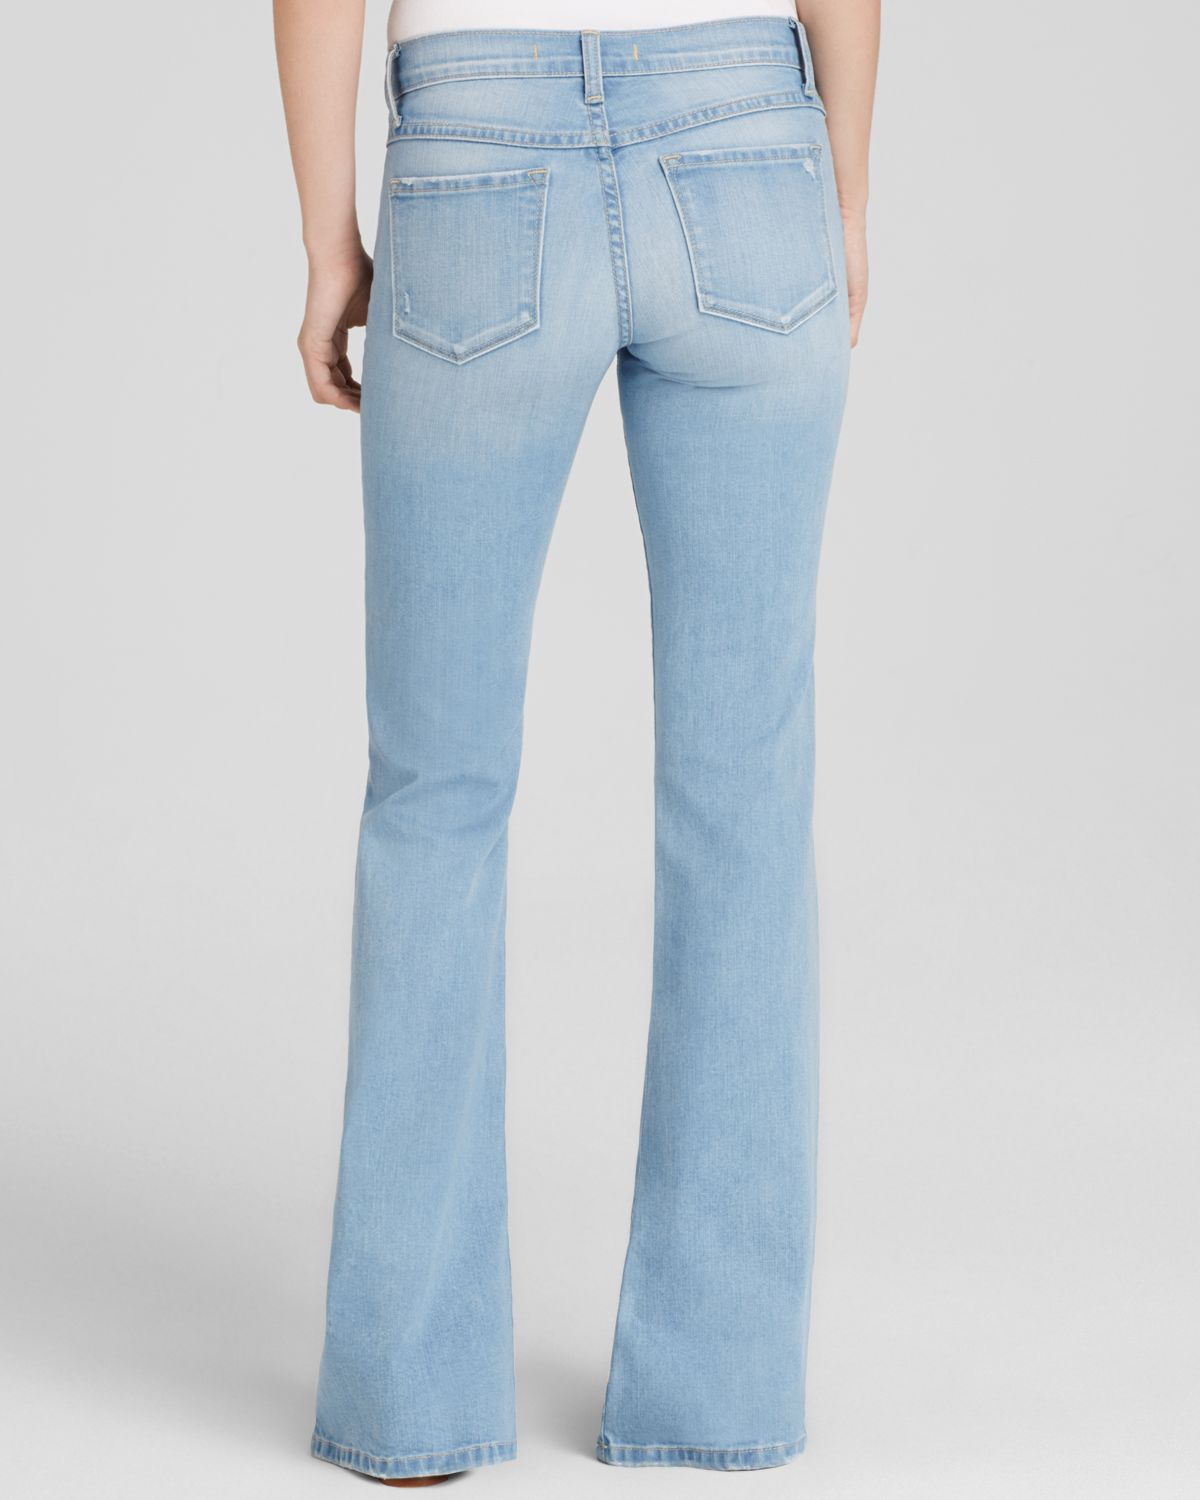 Find light blue flare jeans at ShopStyle. Shop the latest collection of light blue flare jeans from the most popular stores - all in one place.